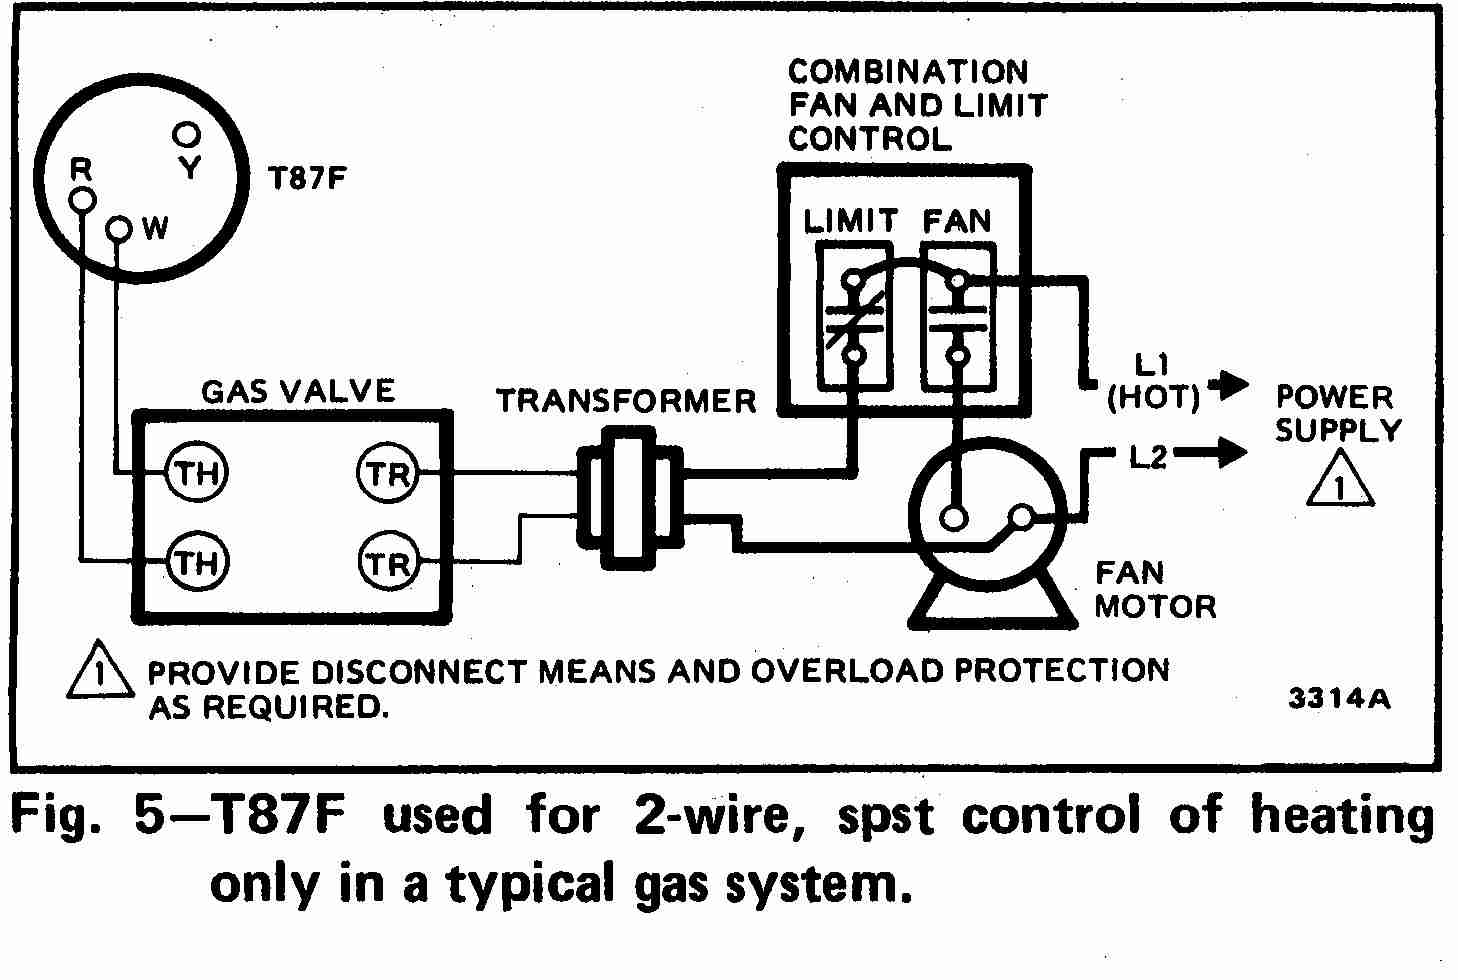 TT_T87F_0002_2Wg_DJF control valve wiring diagram electrical wiring diagram \u2022 free white-rodgers fan control center wiring diagram at pacquiaovsvargaslive.co